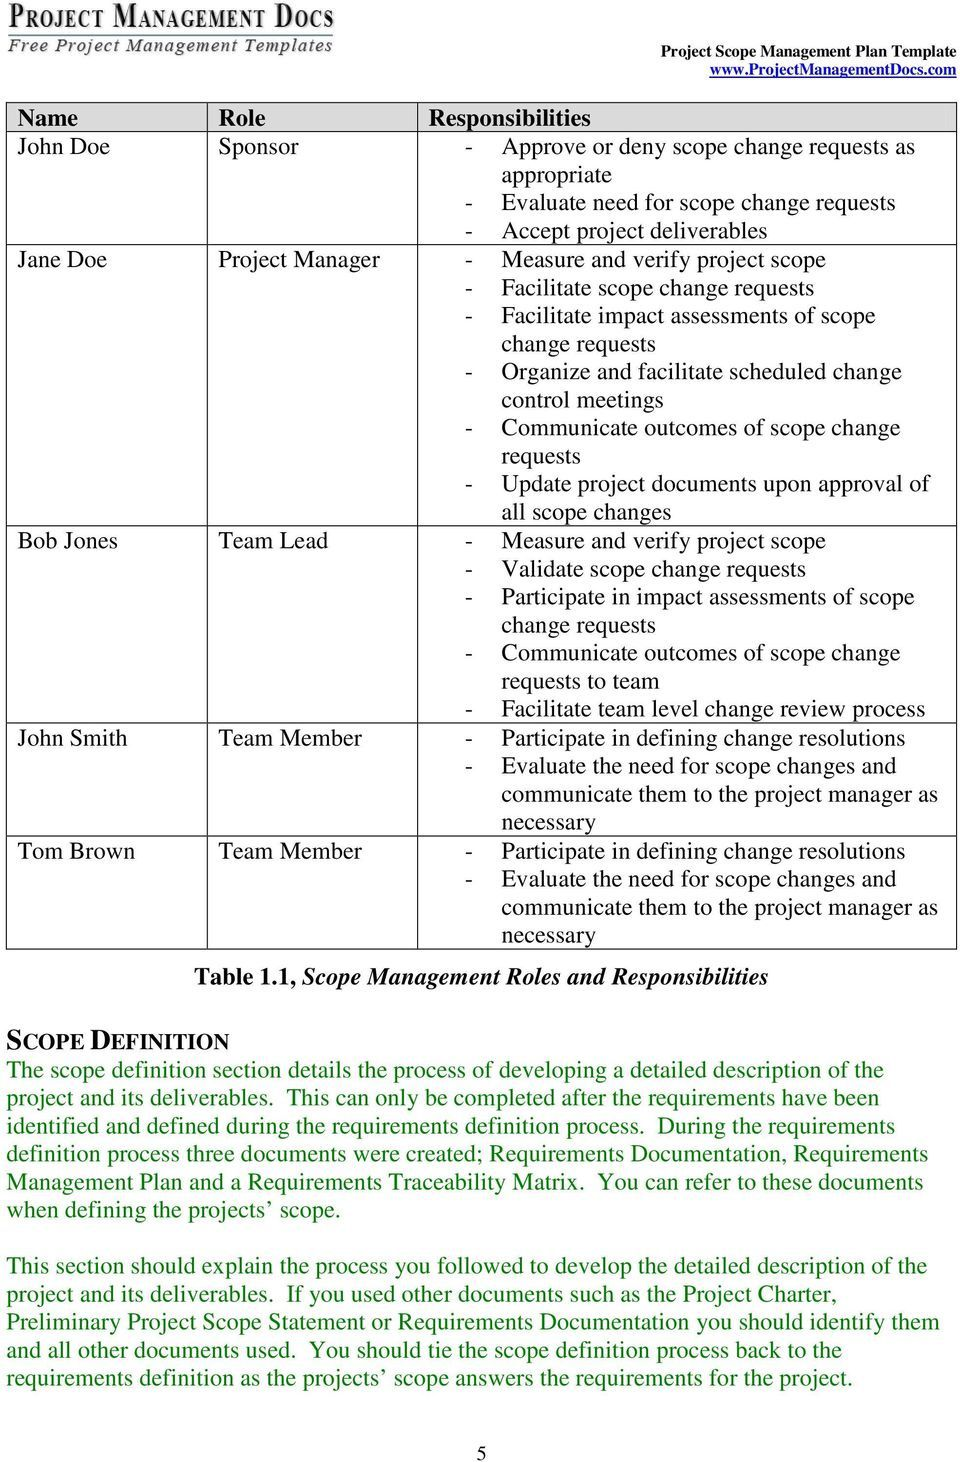 005 Wonderful Project Scope Management Plan Template Free High Resolution Full